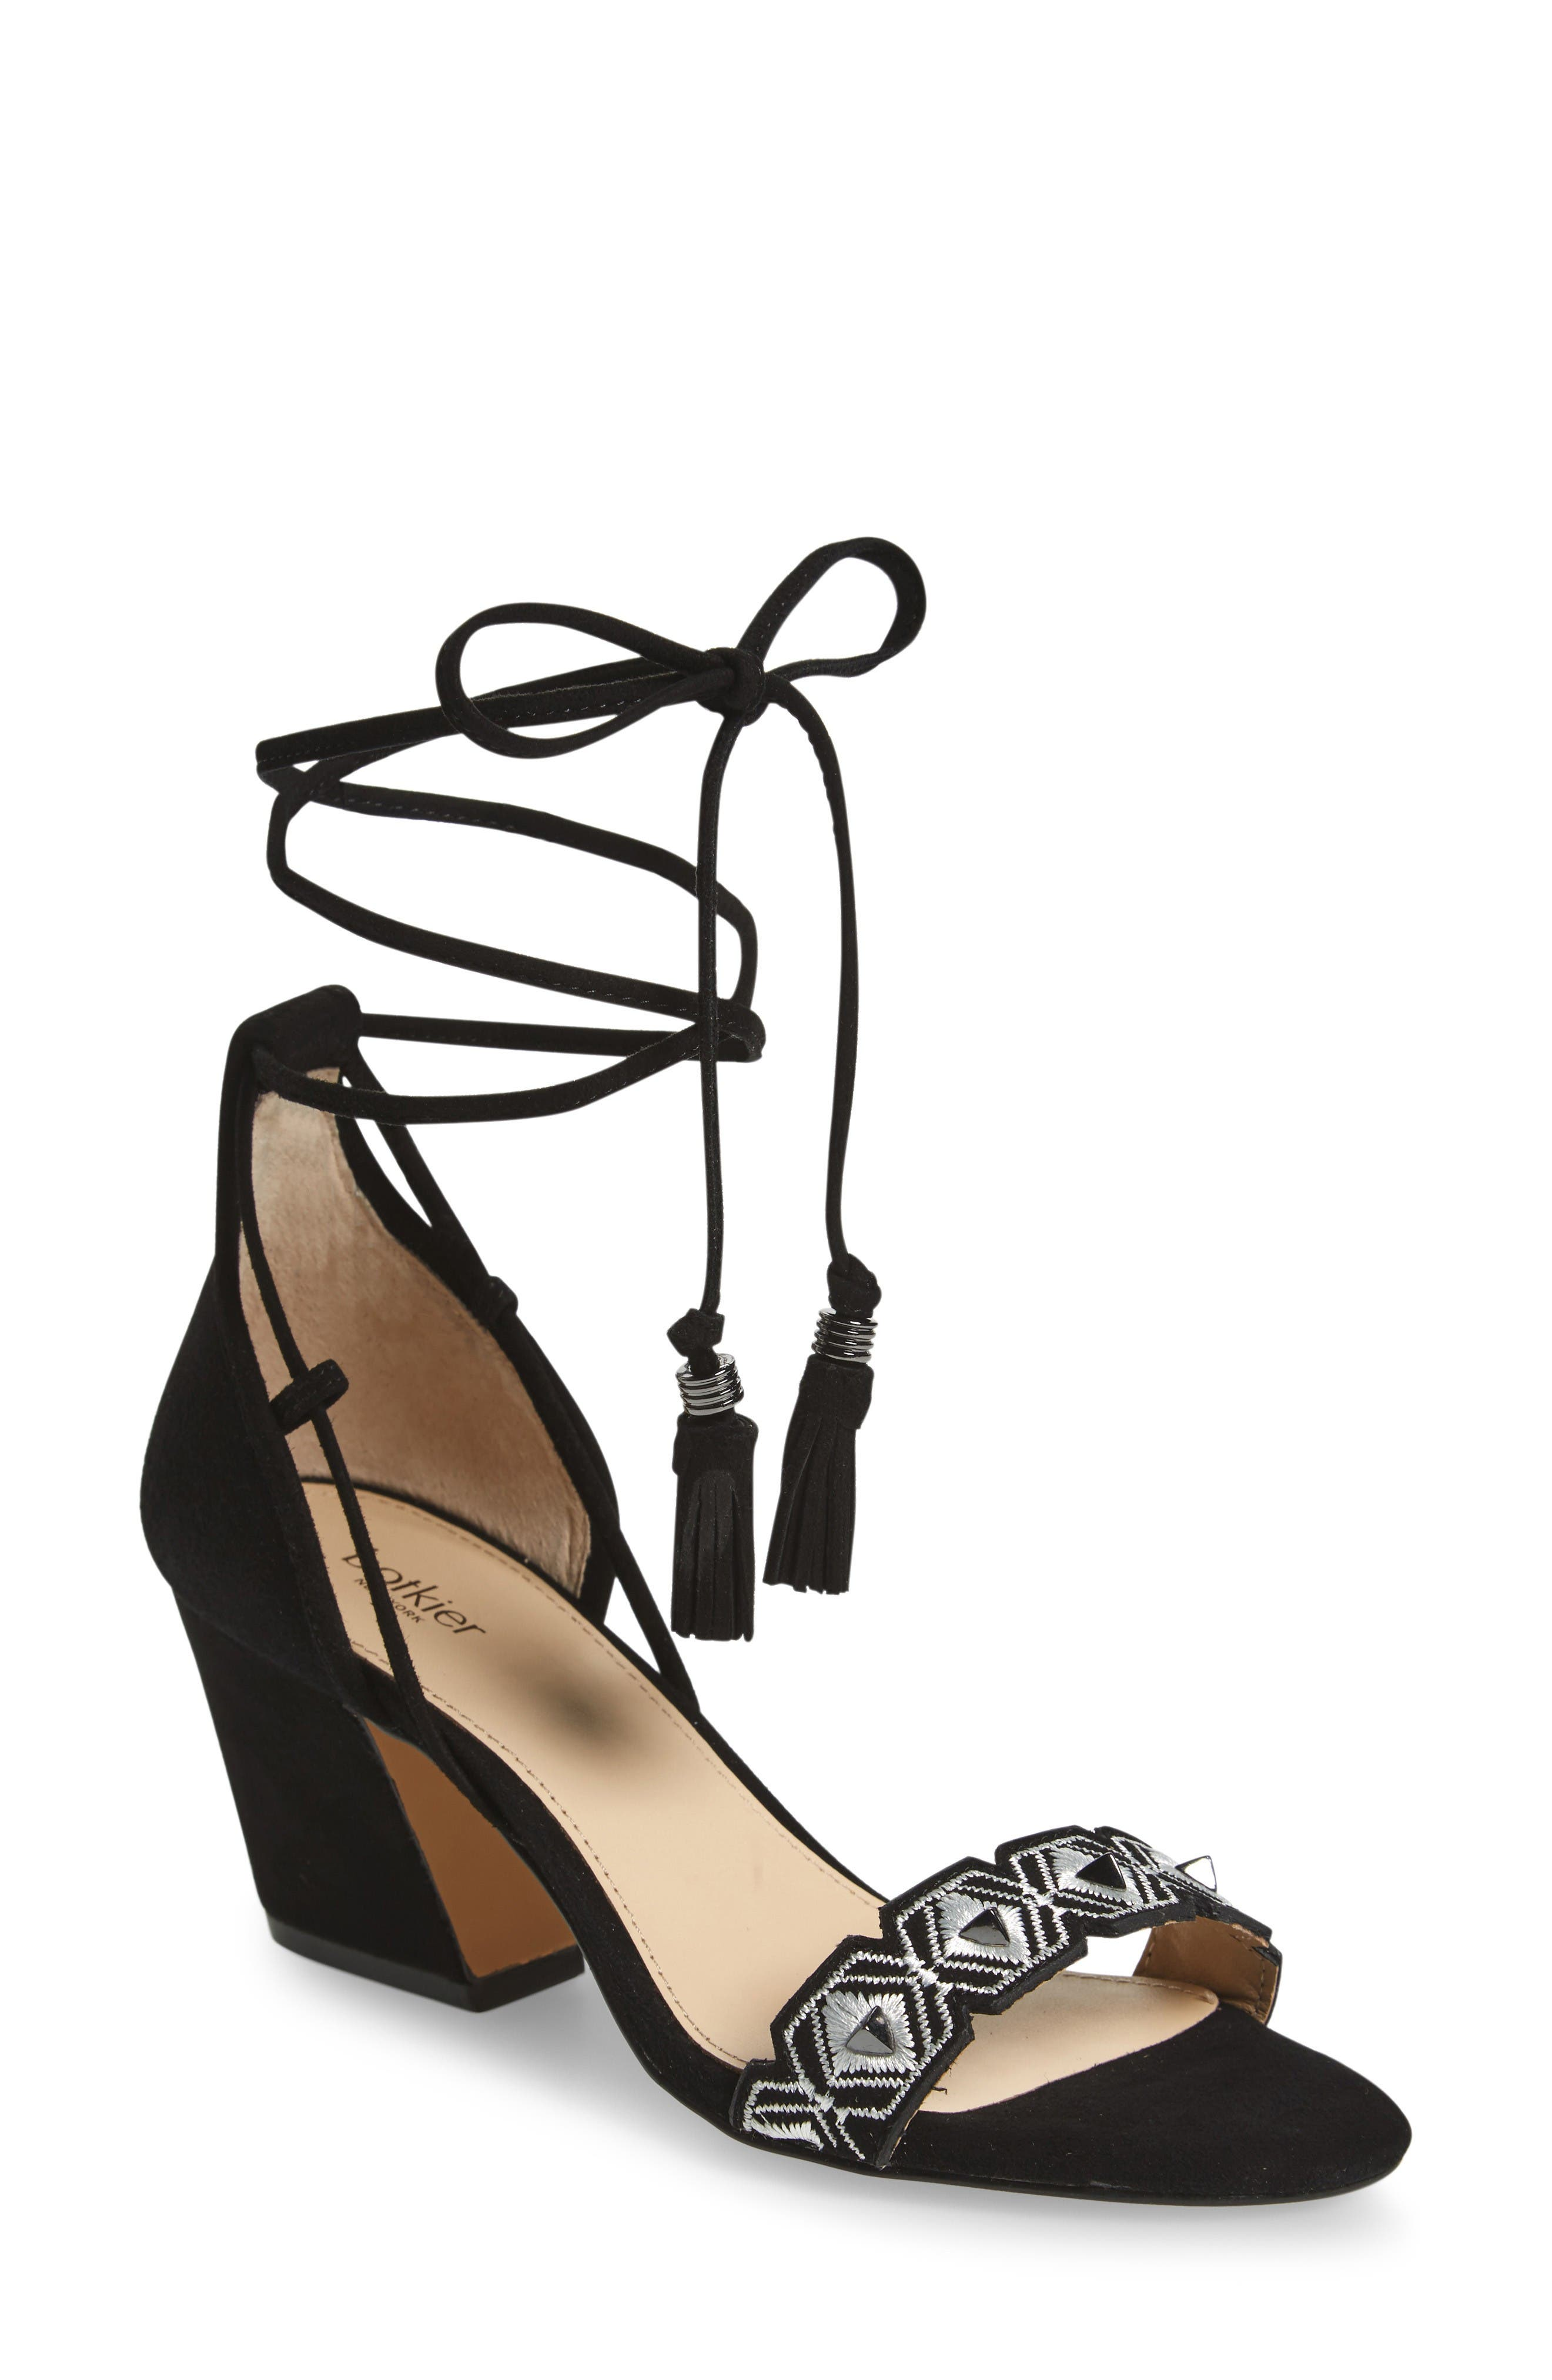 Alternate Image 1 Selected - Botkier Penelope Embroidered Ankle Wrap Sandal (Women)